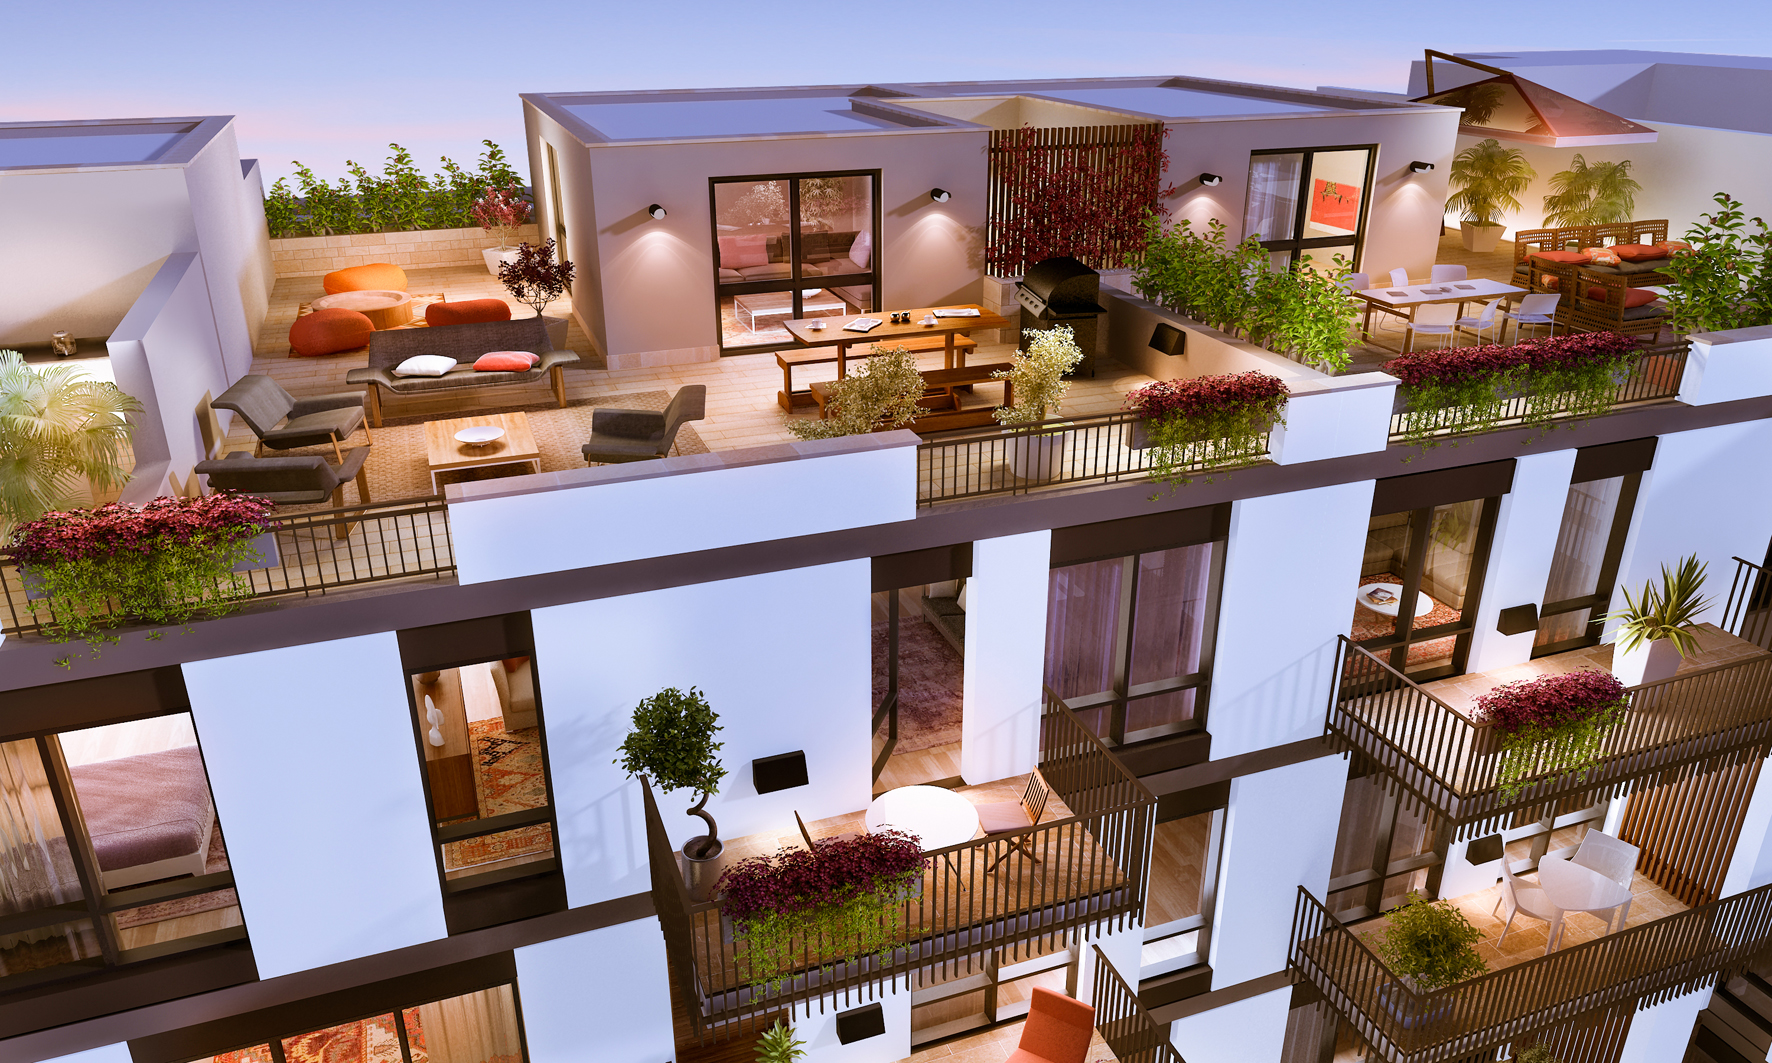 511-the-courtyards-3-bedrooms